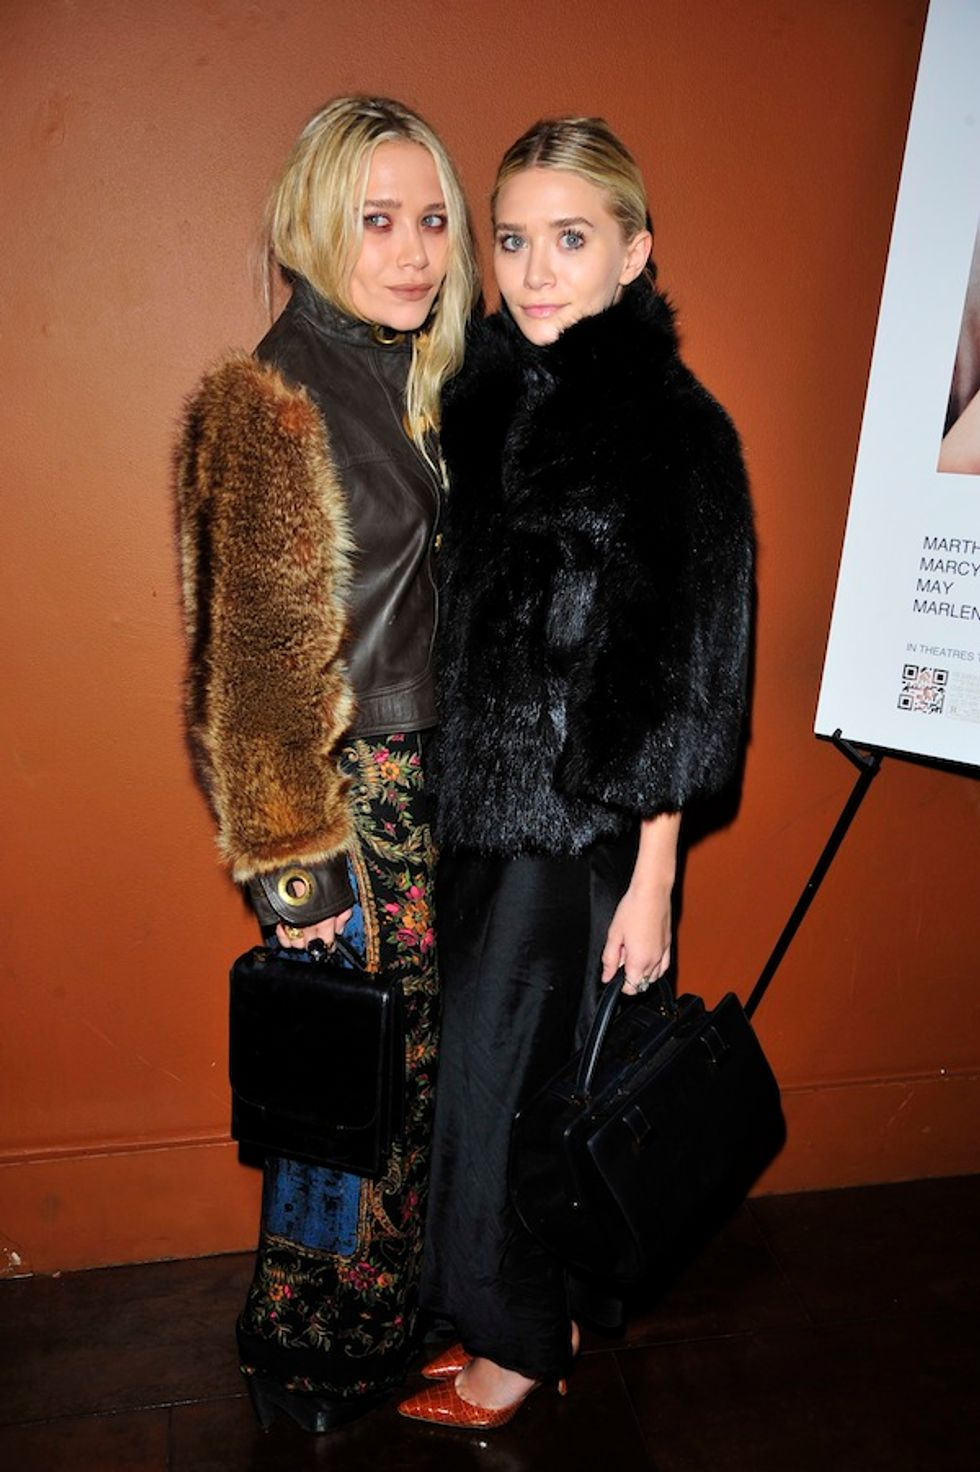 A Salute to the Olsen Twins' High-Fashion Lewks